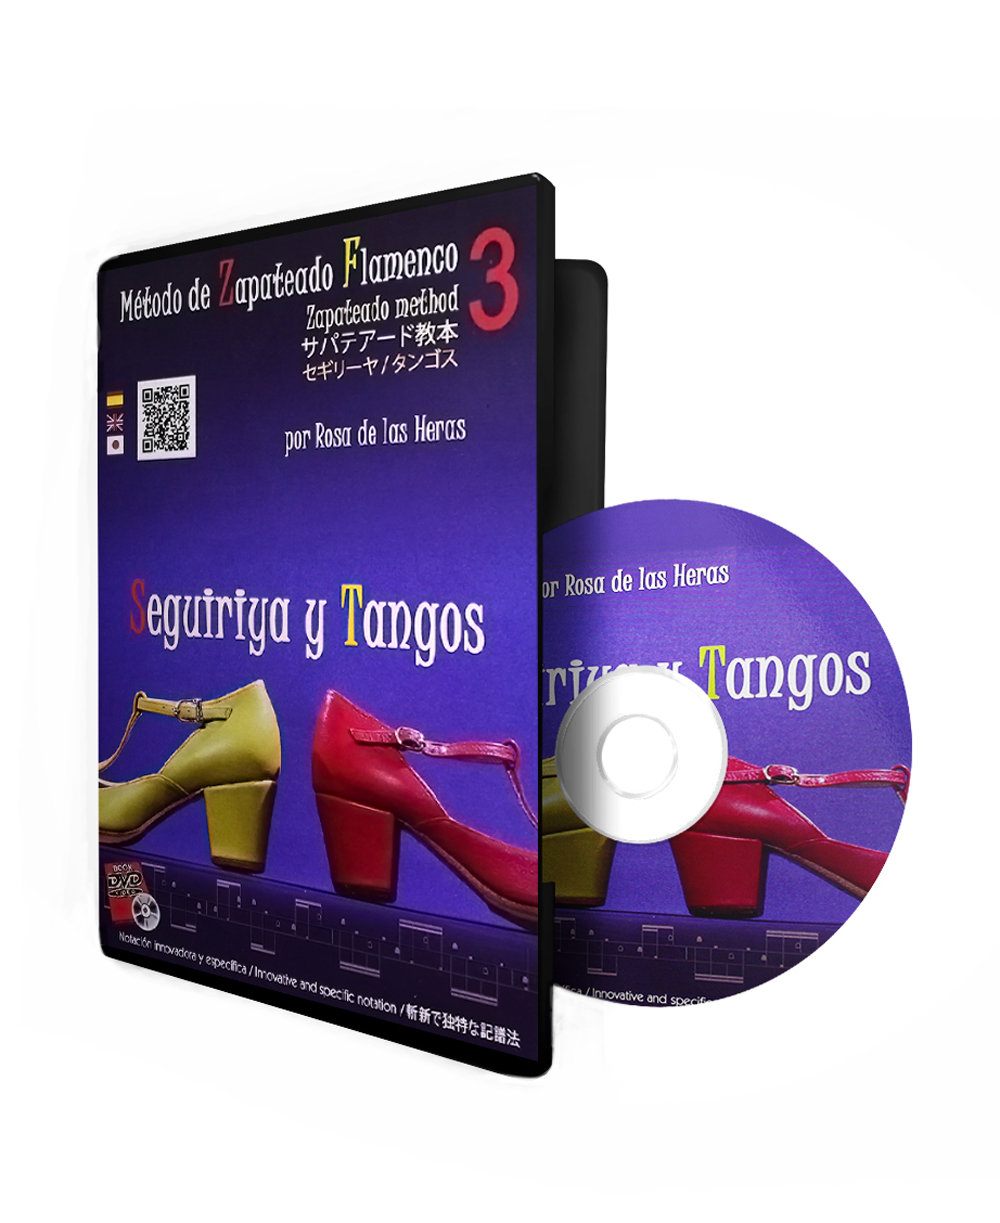 Seguiriya + Tango flamenco dance DVD lessons from the conservatory of Madrid vol 3